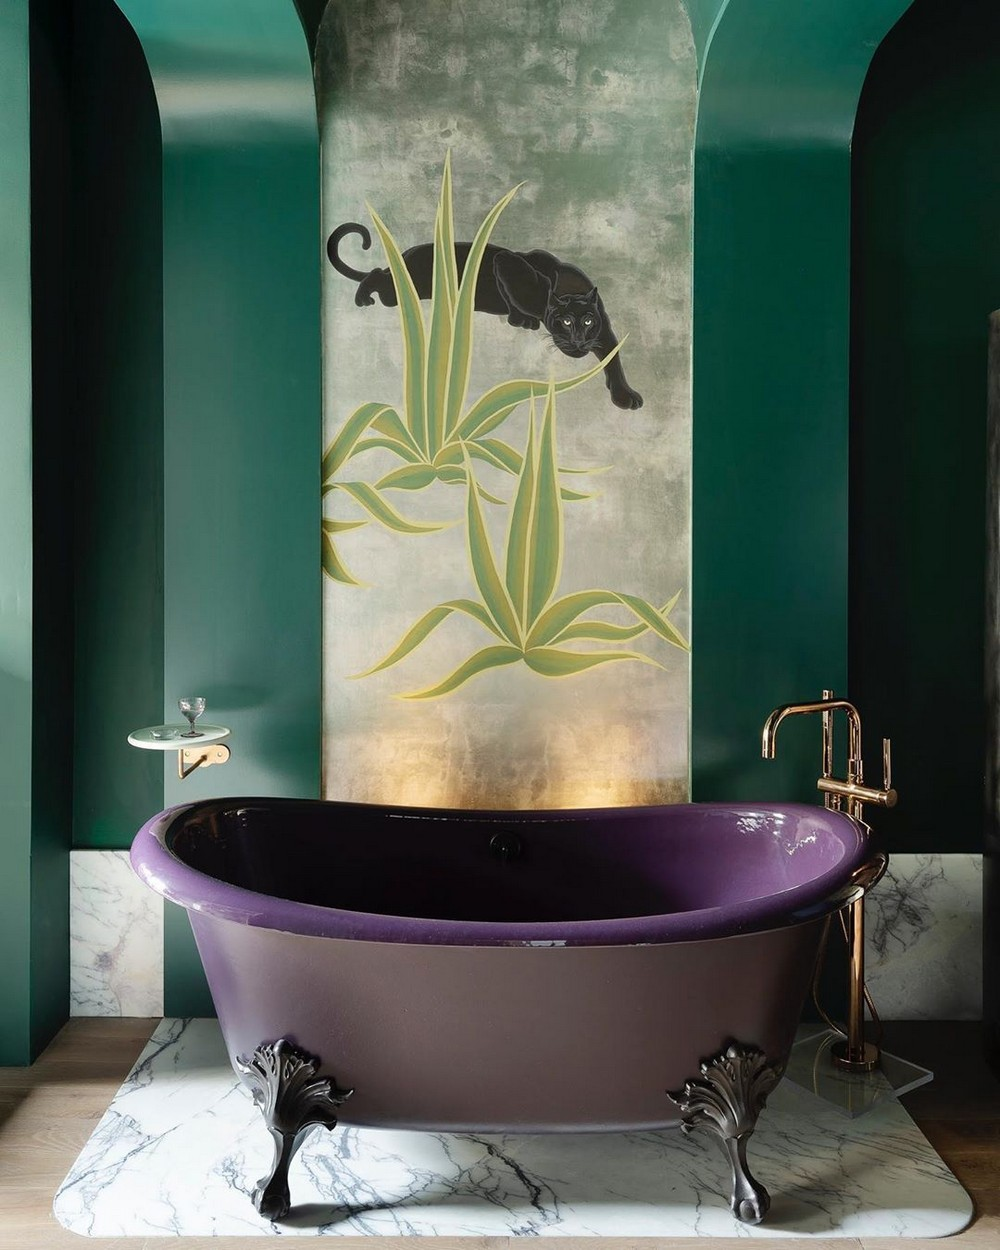 Bathroom Trends 8 Ingenious Design Ideas To Create A Stylish Interior